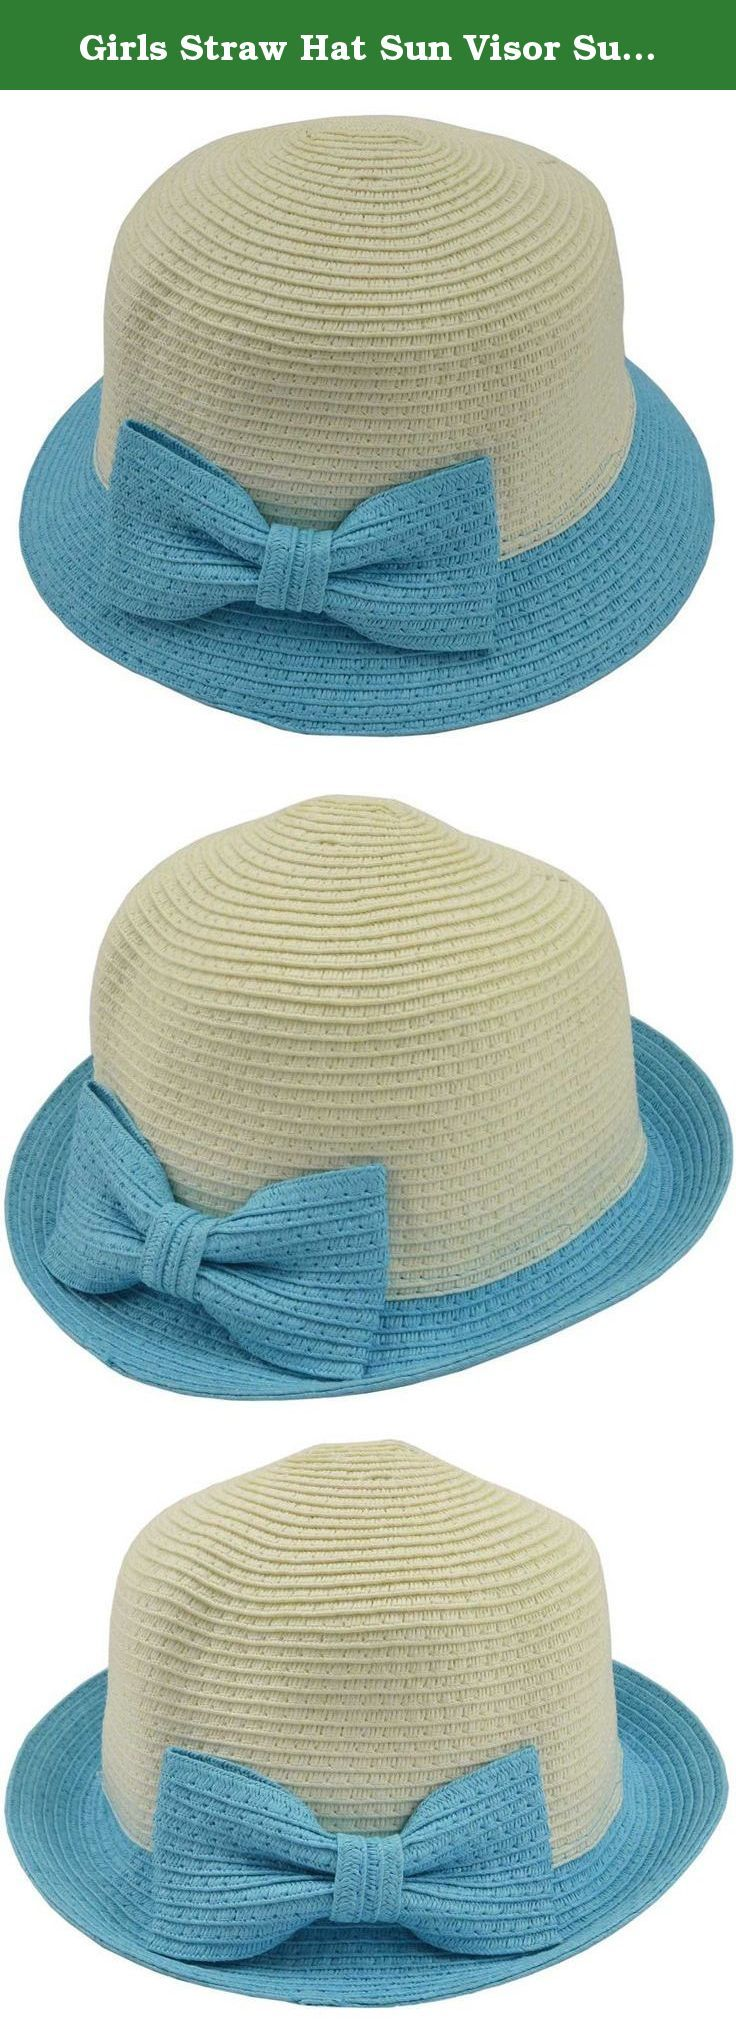 Girls Straw Hat Sun Visor Summer Beach Hat Bow Tie Design XMZ01 (light blue). Girls Straw Hat Sun Visor Summer Beach Hat Bow Tie Design.